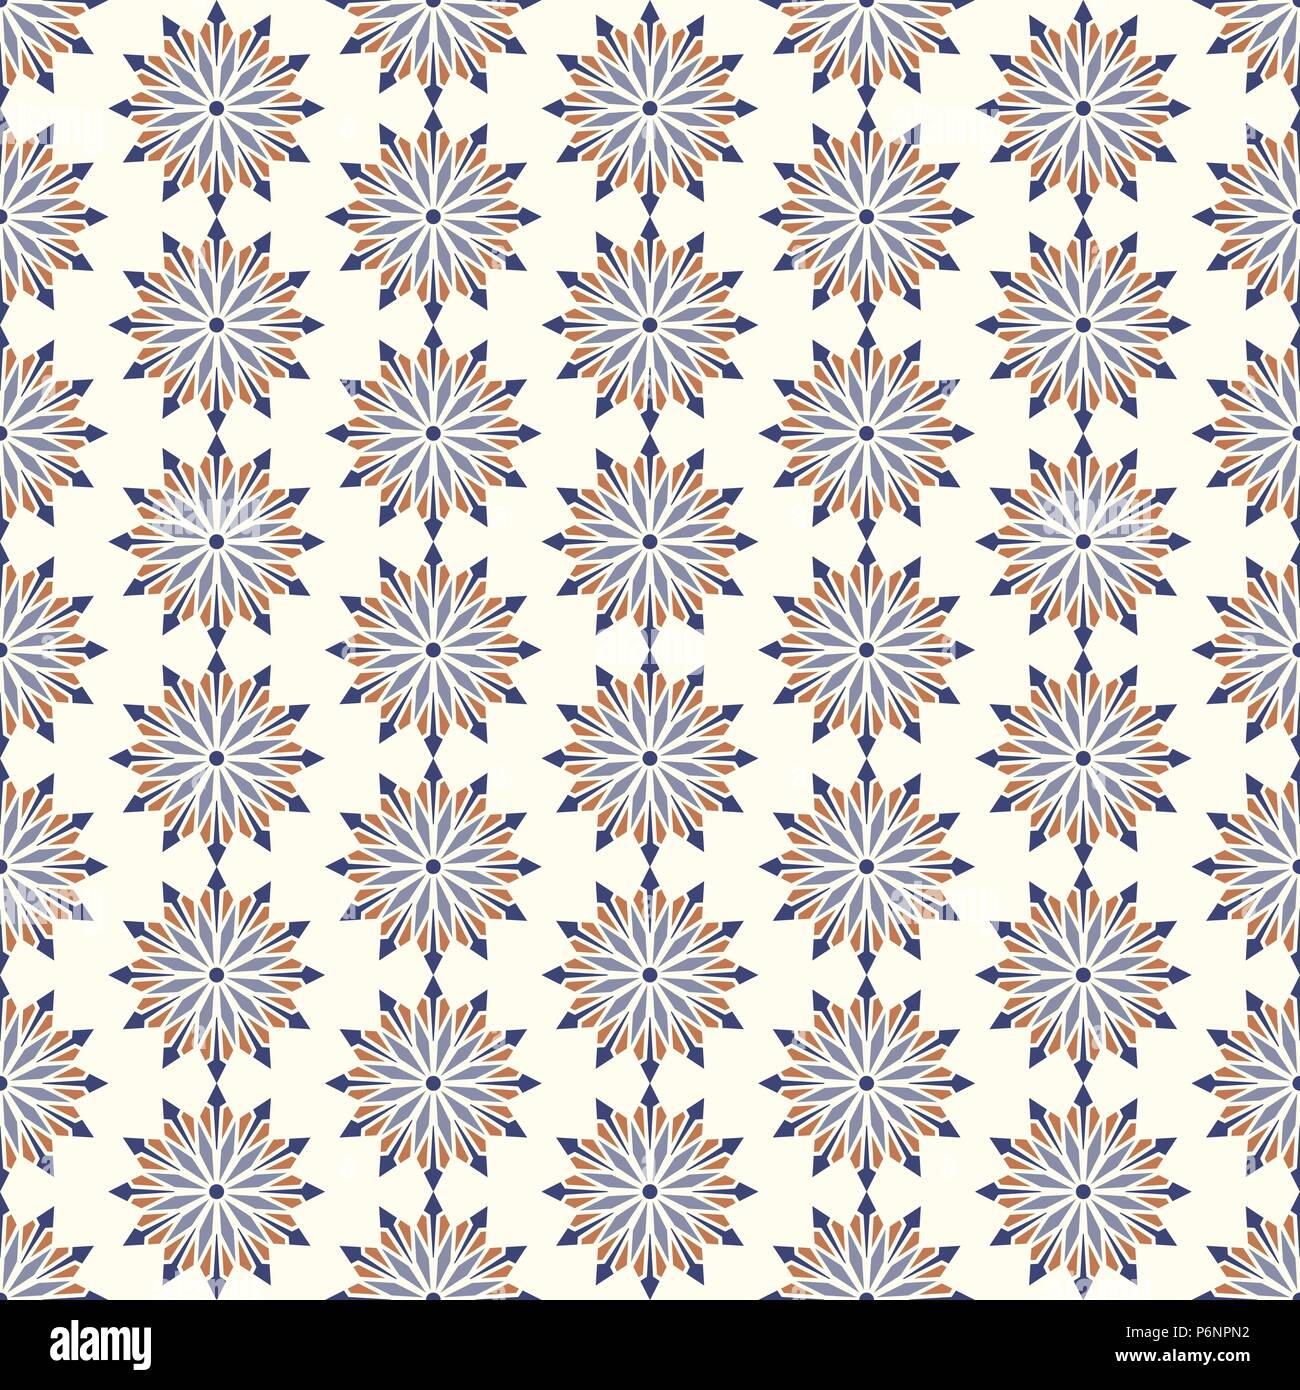 Dark blue modern flower and arrow and rhomboid shape seamless pattern. Graphic bloom pattern for fashionable or classic design - Stock Vector